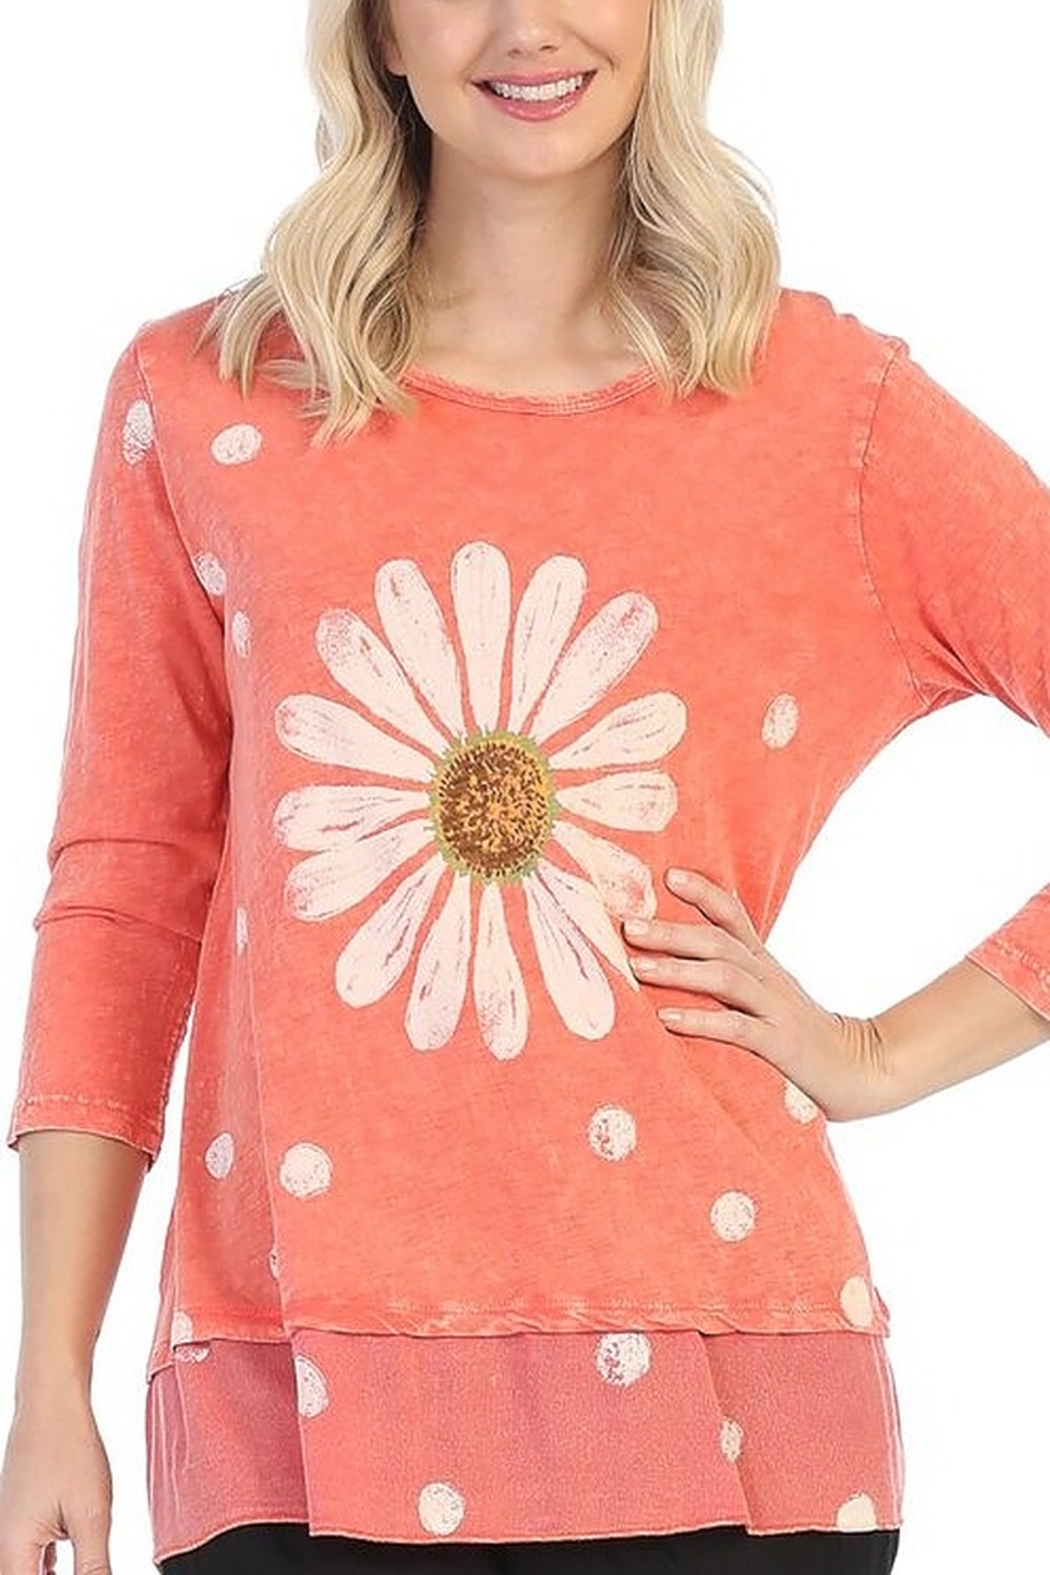 Jess & Jane Happy Days Floral Printed Mineral Washed Tunic Top - Main Image